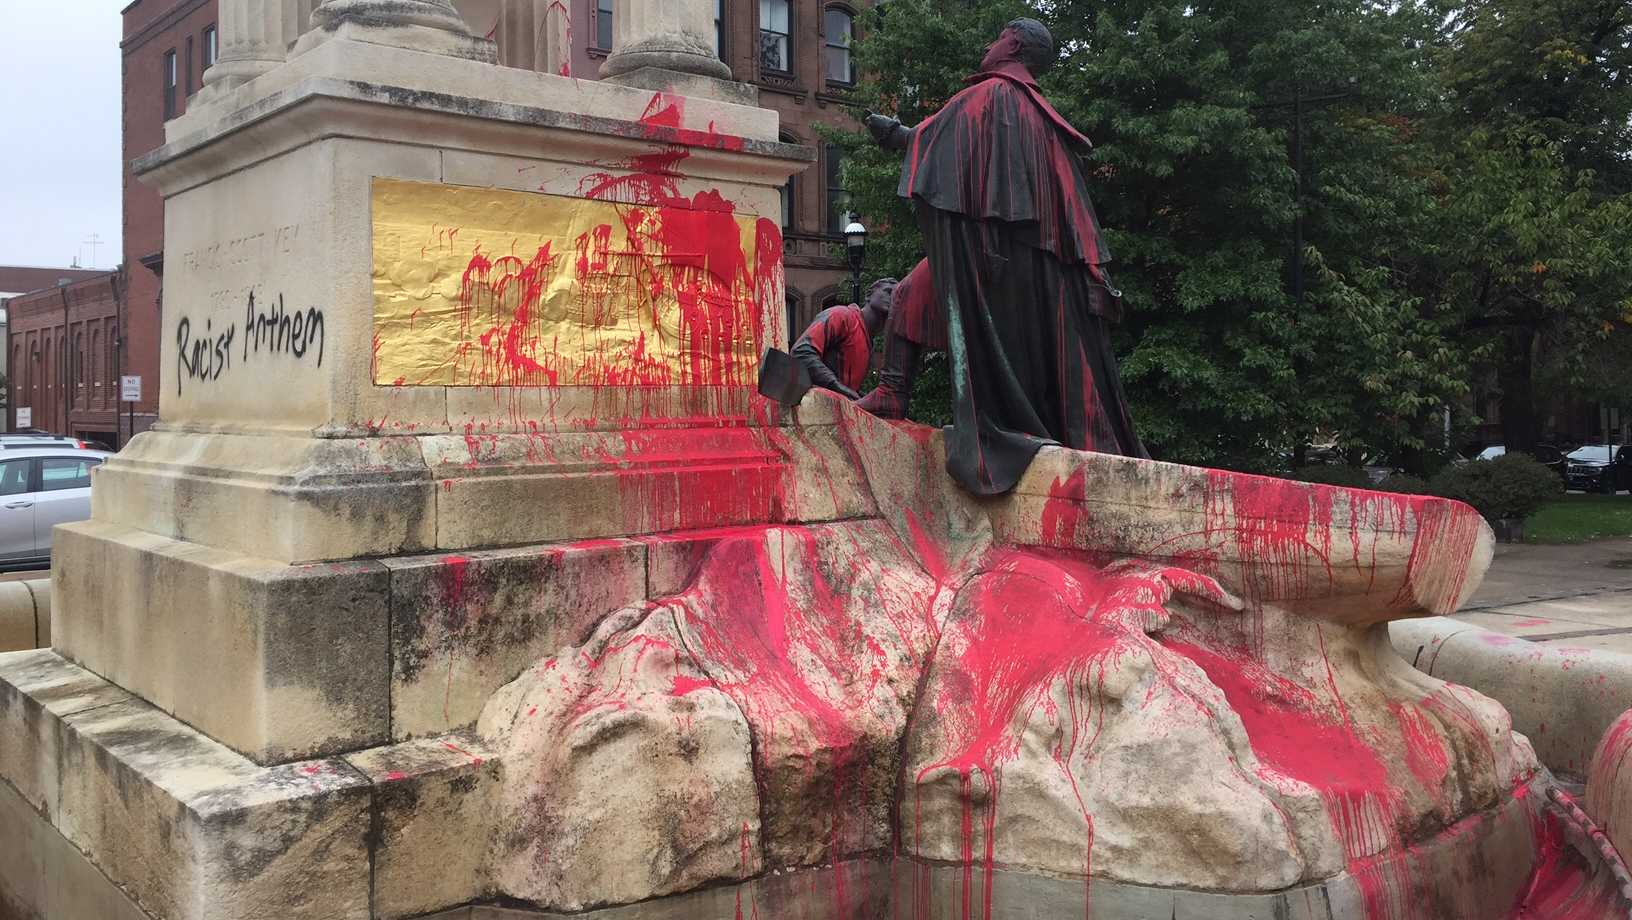 Francis Scott Key Monument vandalized